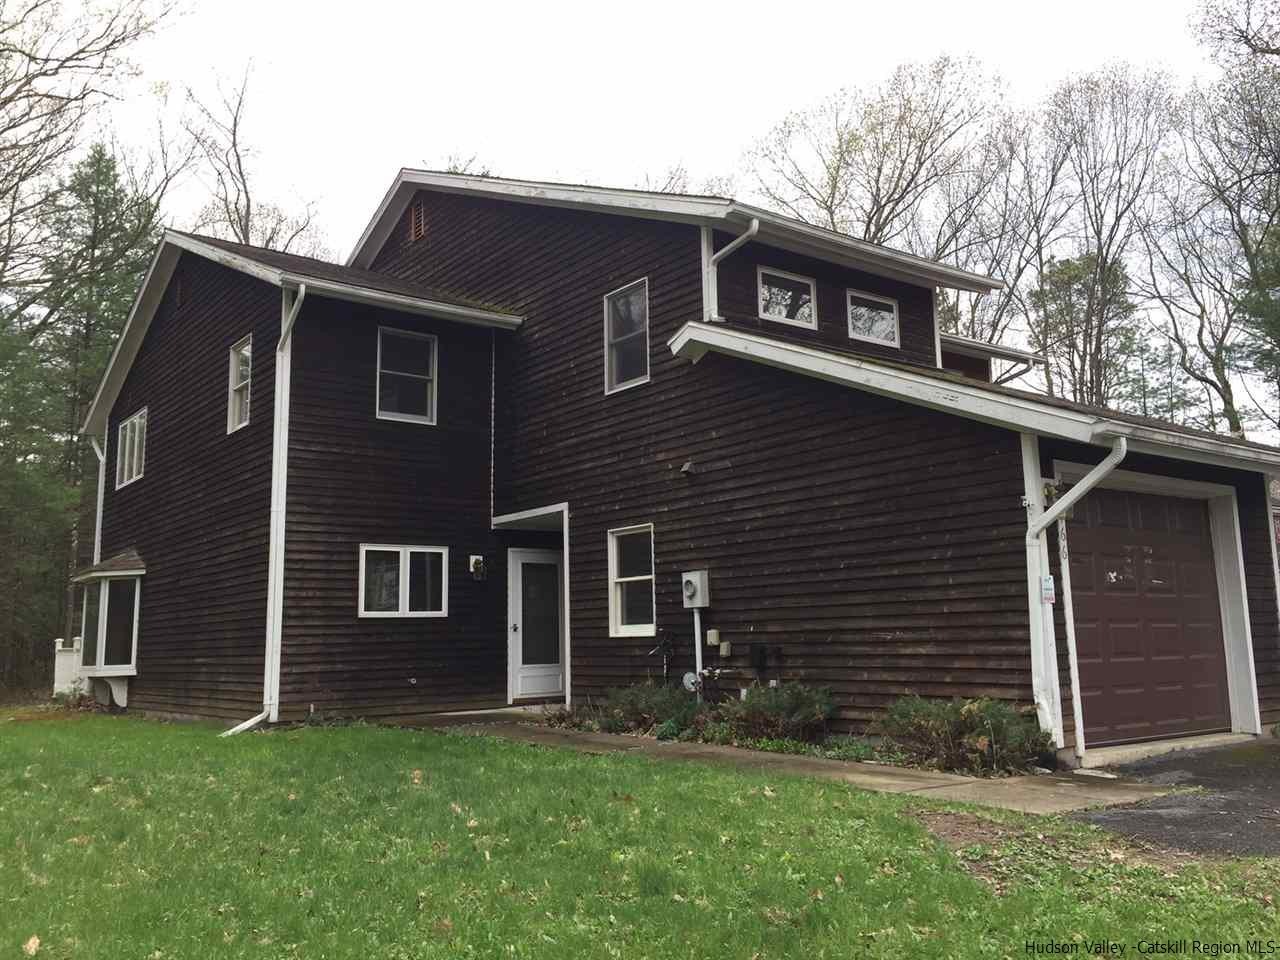 Townhouse for Sale at 166 Ledge Road 166 Ledge Road Kingston, New York 12401 United States